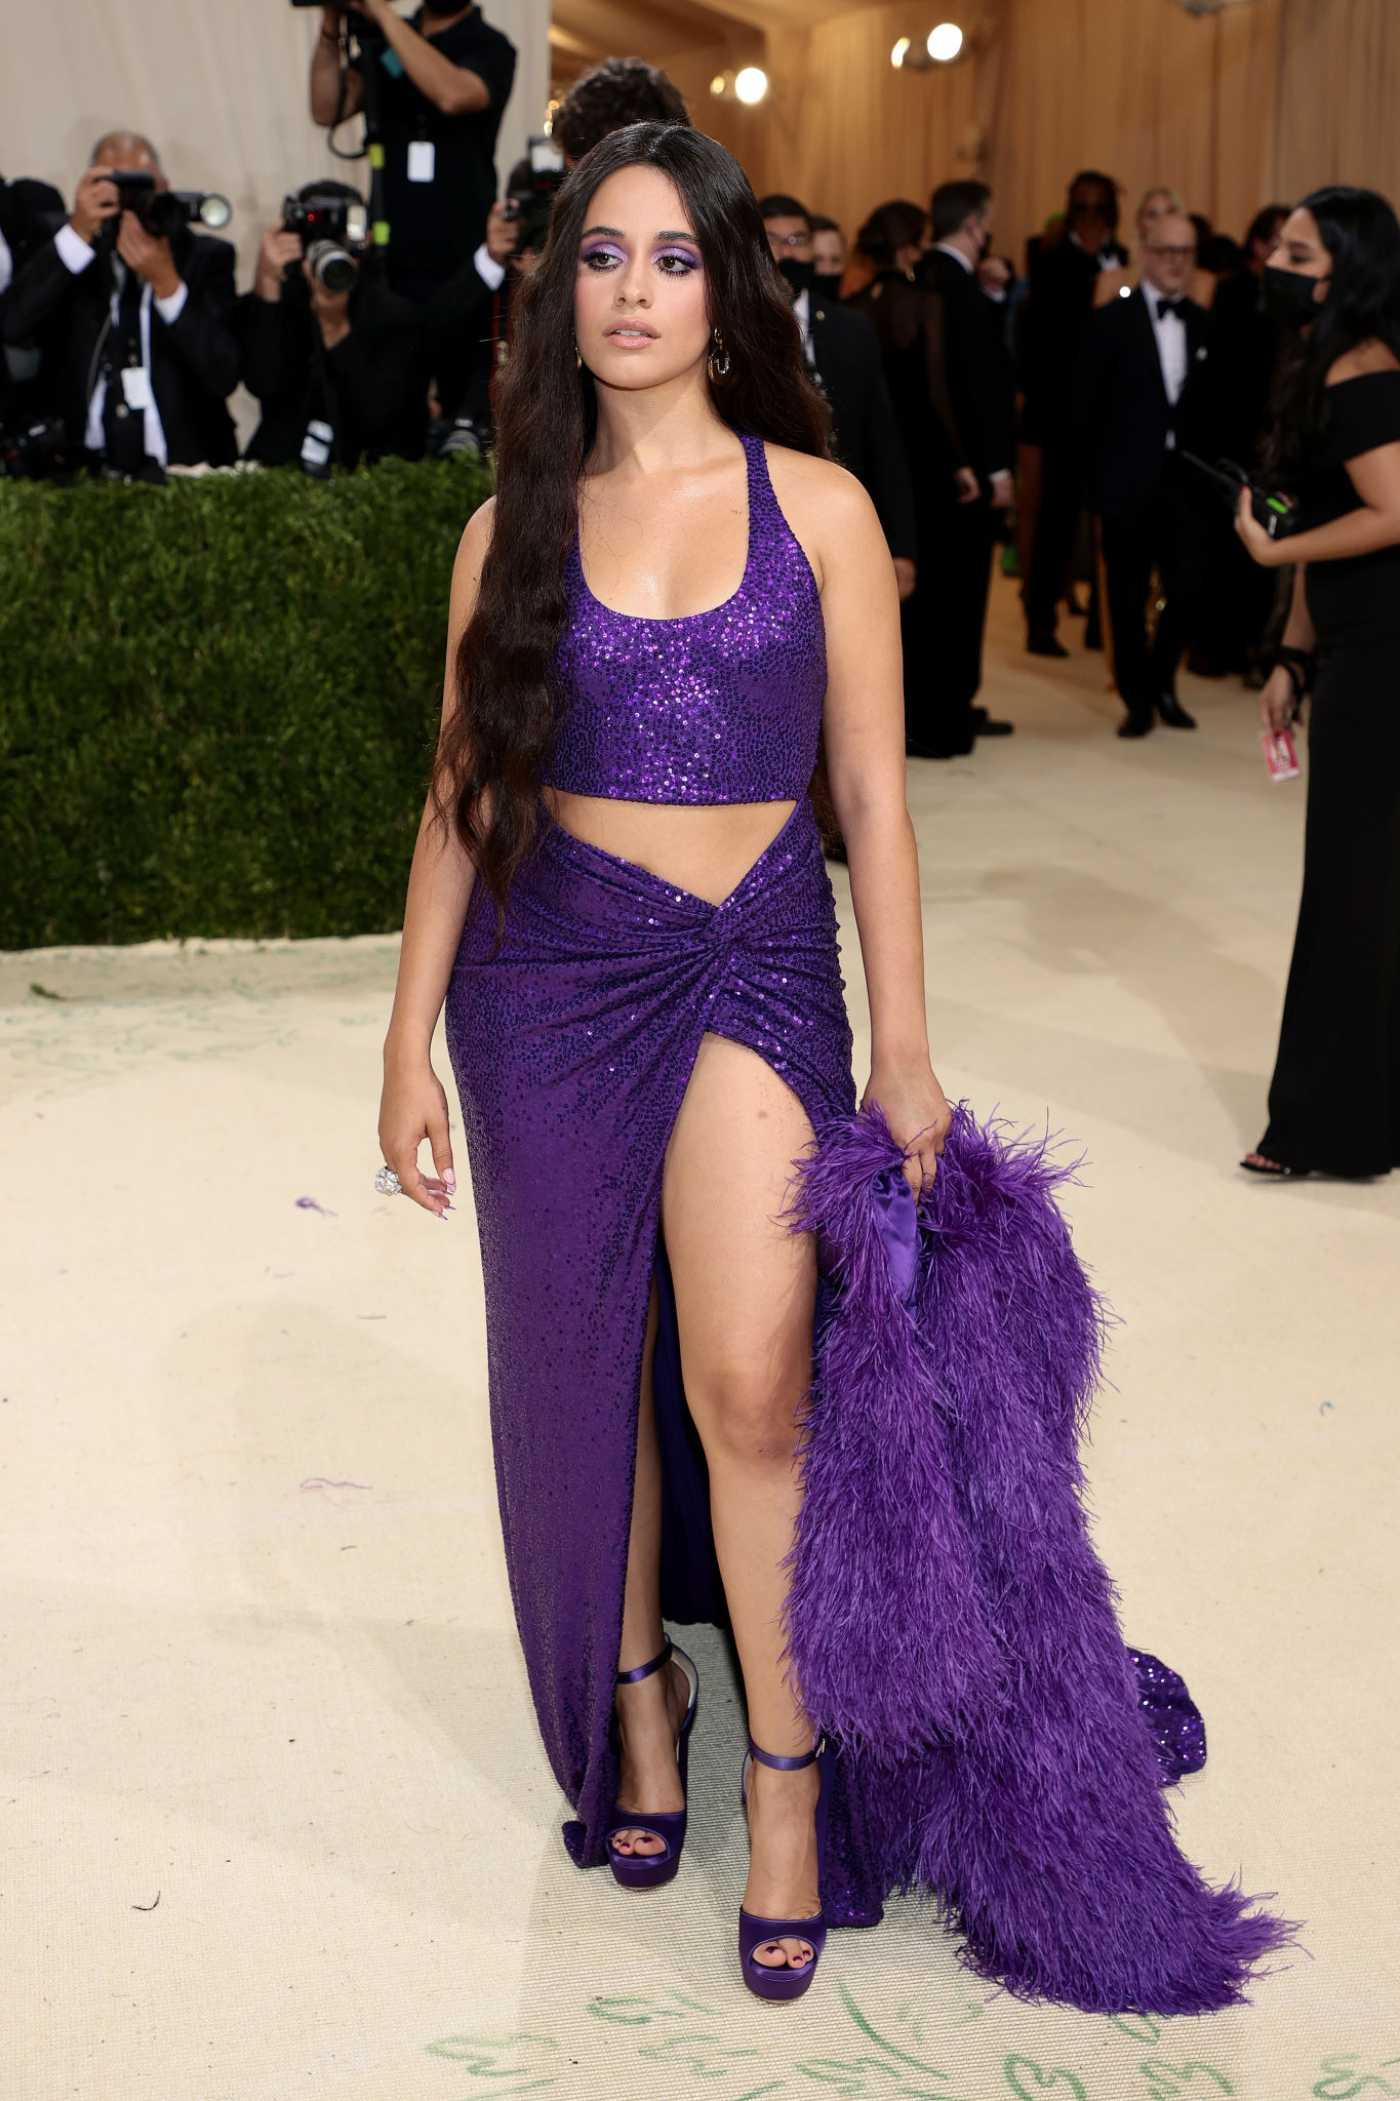 Camila Cabello Attends 2021 Met Gala In America: A Lexicon of Fashion at Metropolitan Museum of Art in New York City 09/13/2021